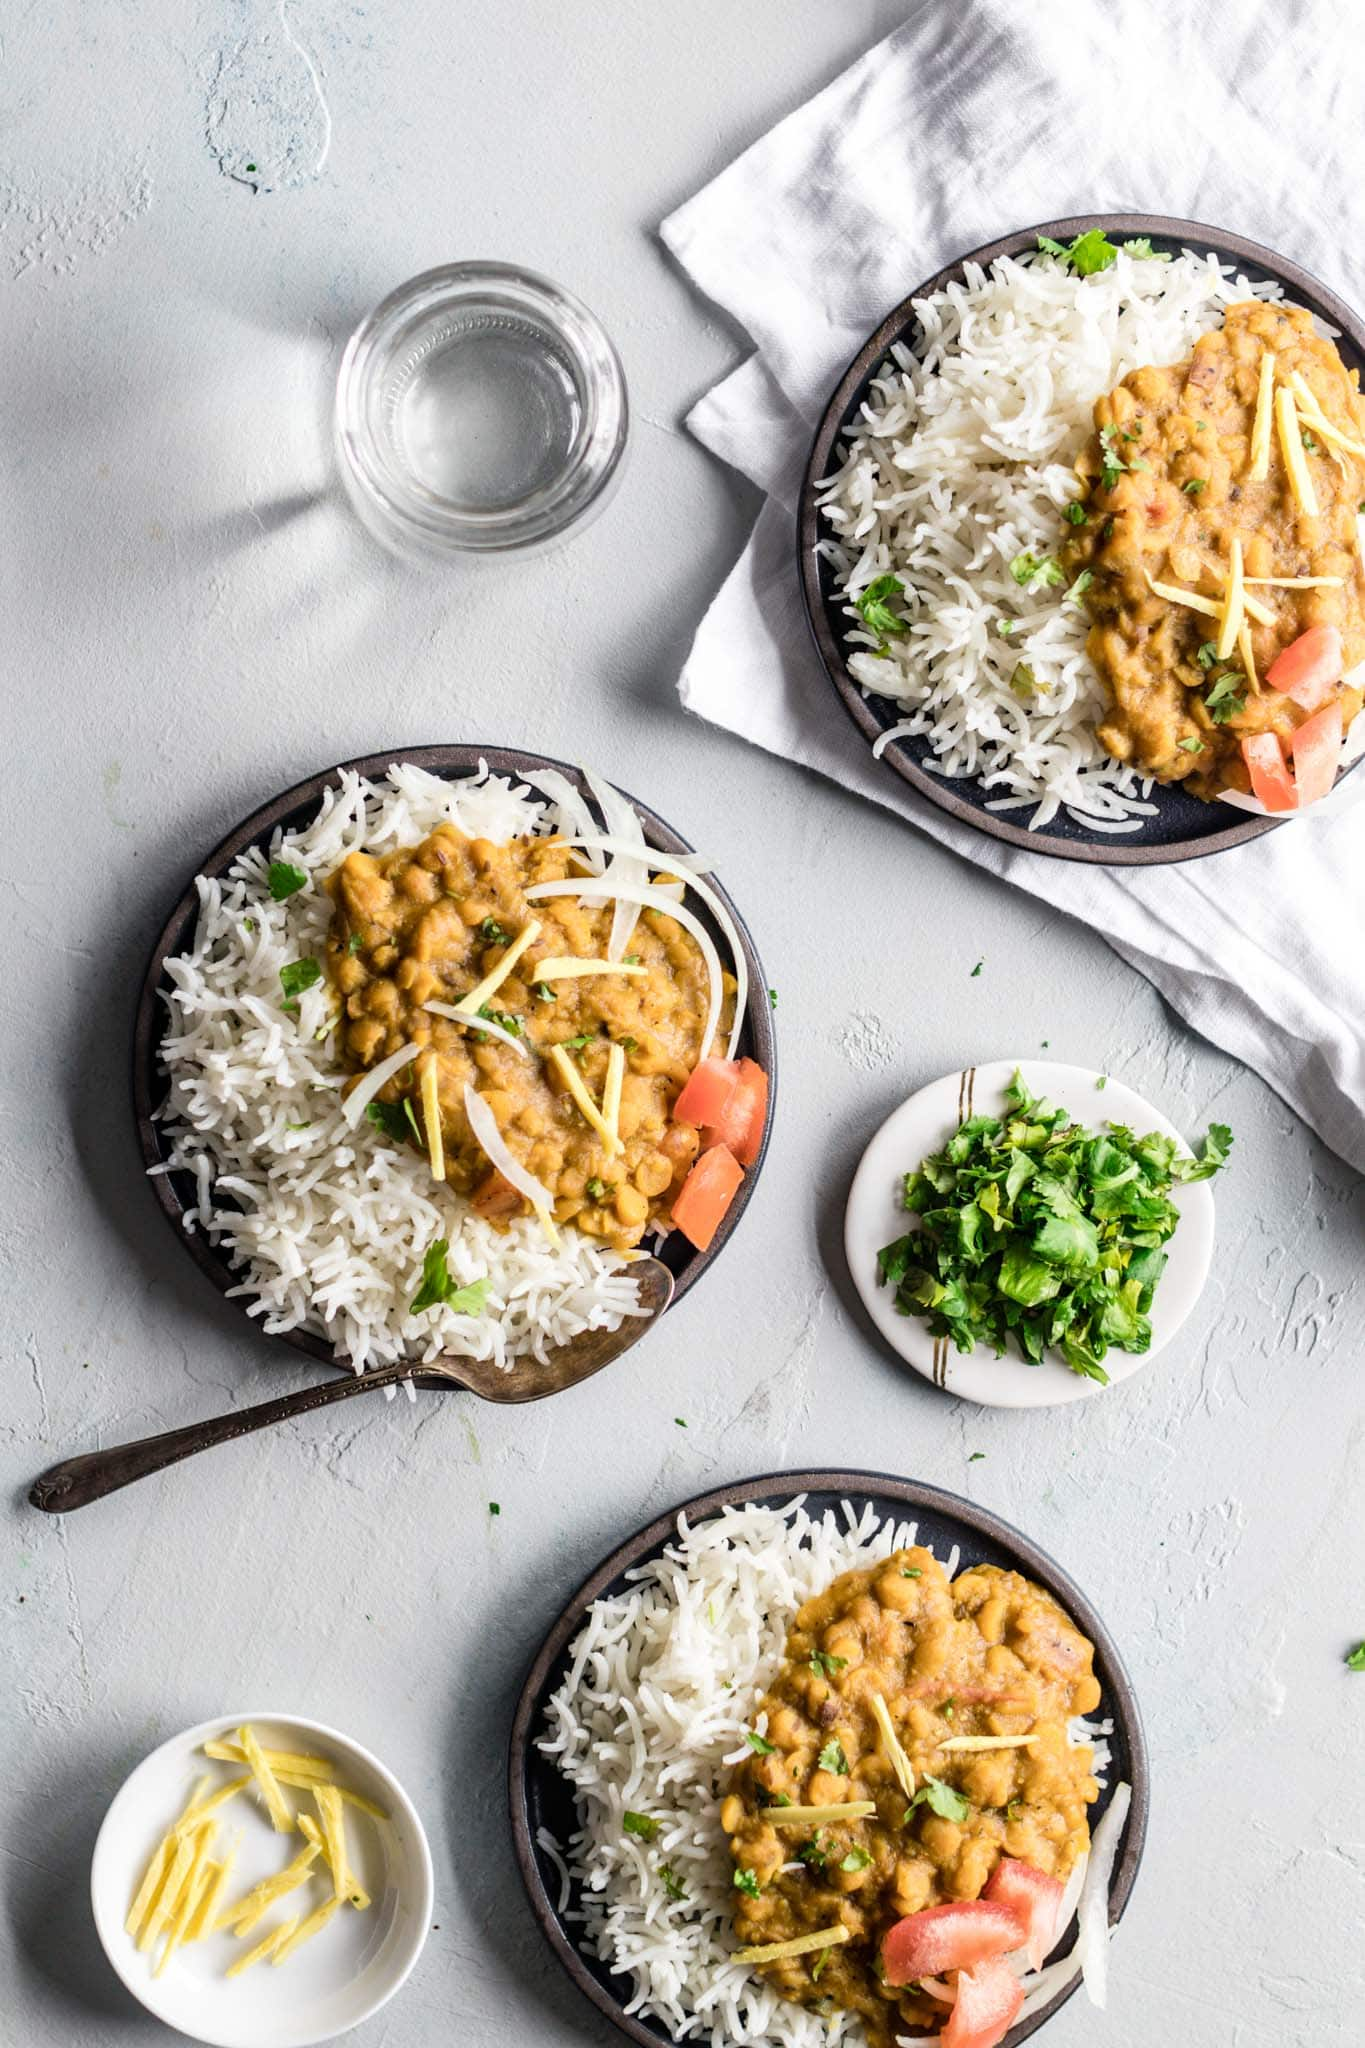 Chana Dal in plates garnished with ginger, onions, and tomatoes with a side of basmati rice